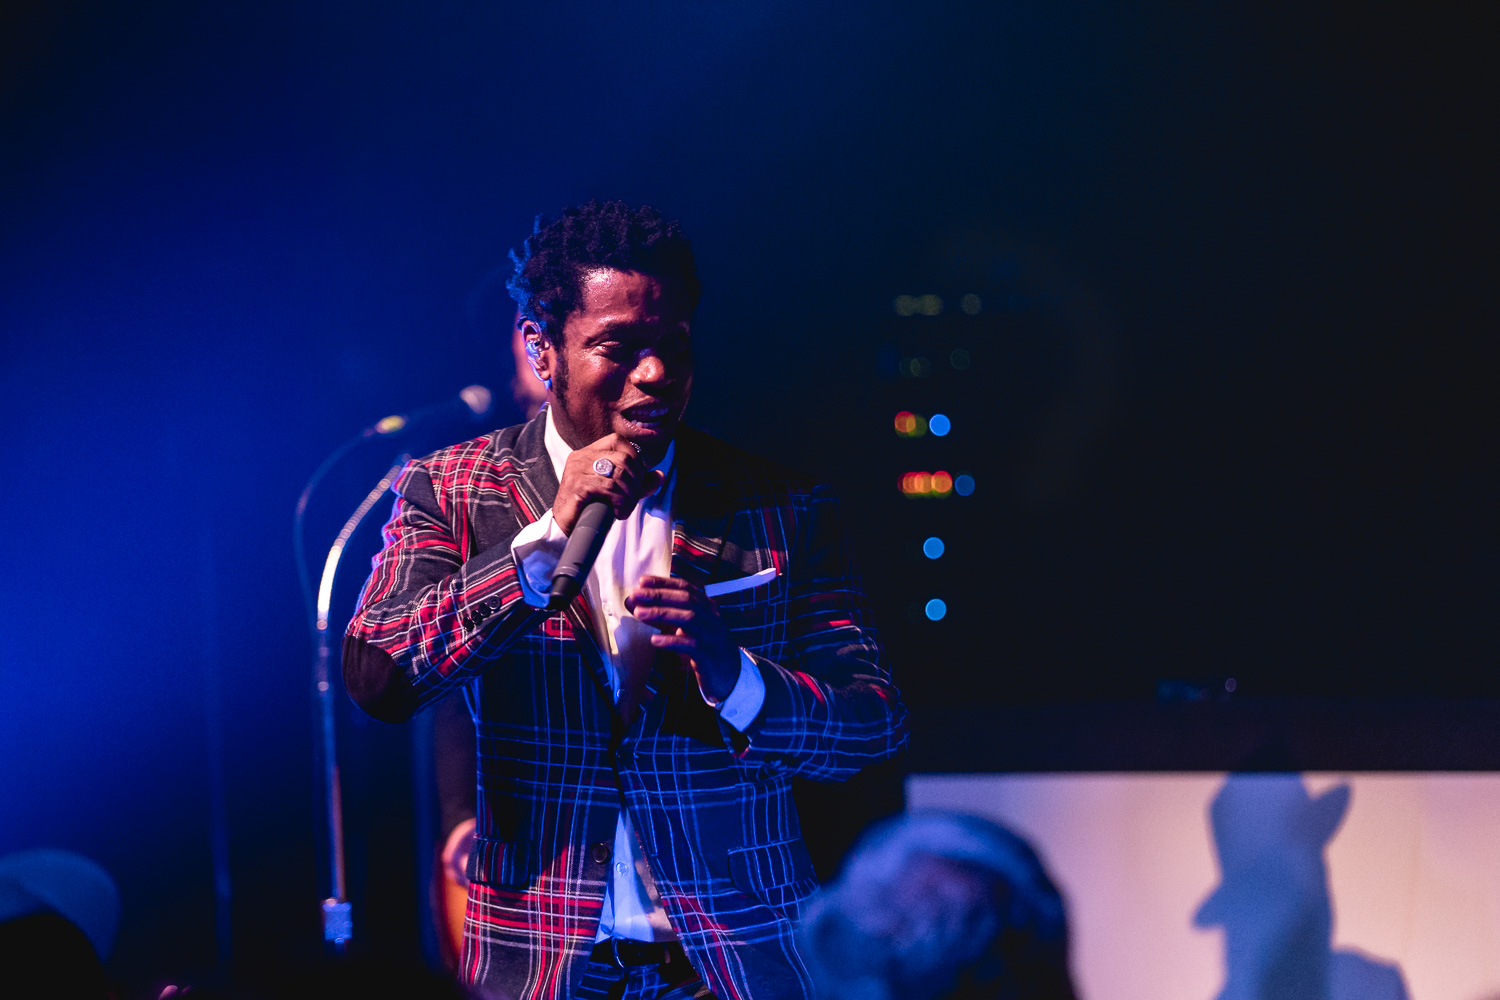 Ty Taylor of Vintage Trouble. Photo: Lmsorenson.net